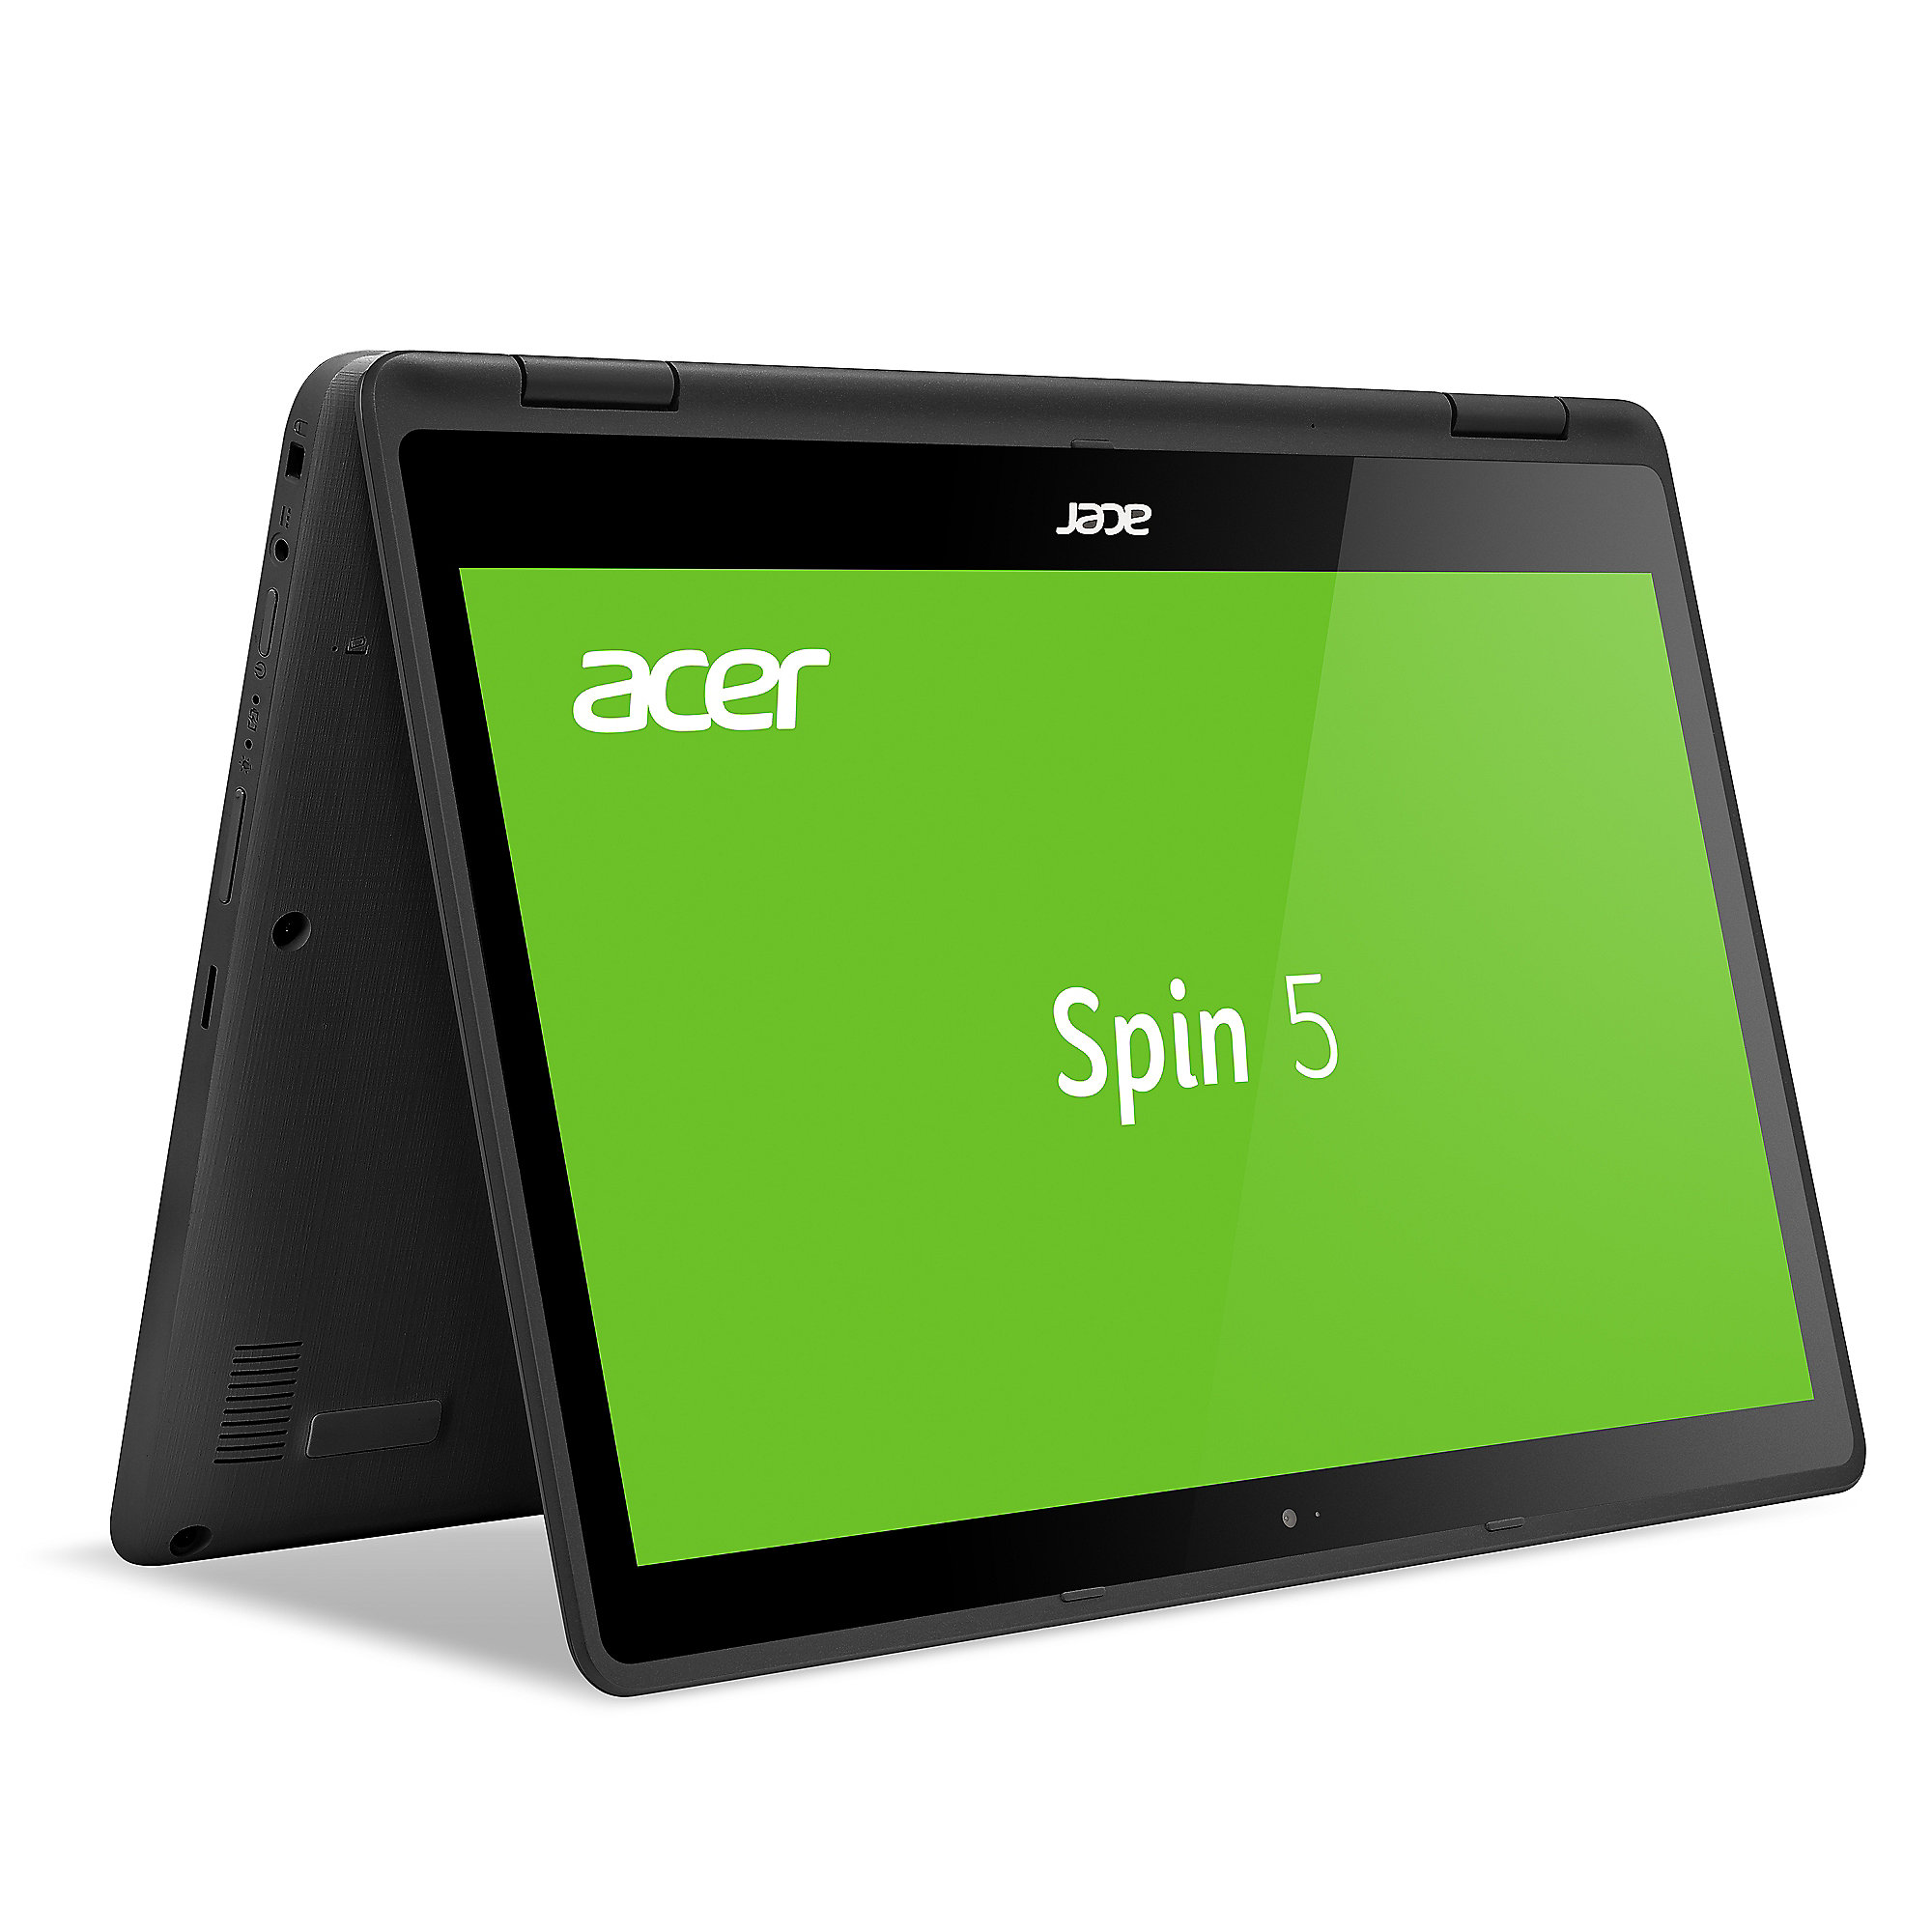 "Acer Spin 5 SP513-51-79AK i7-7500U 8GB/256GB SSD 13"" FHD 2in1 Touch W10"